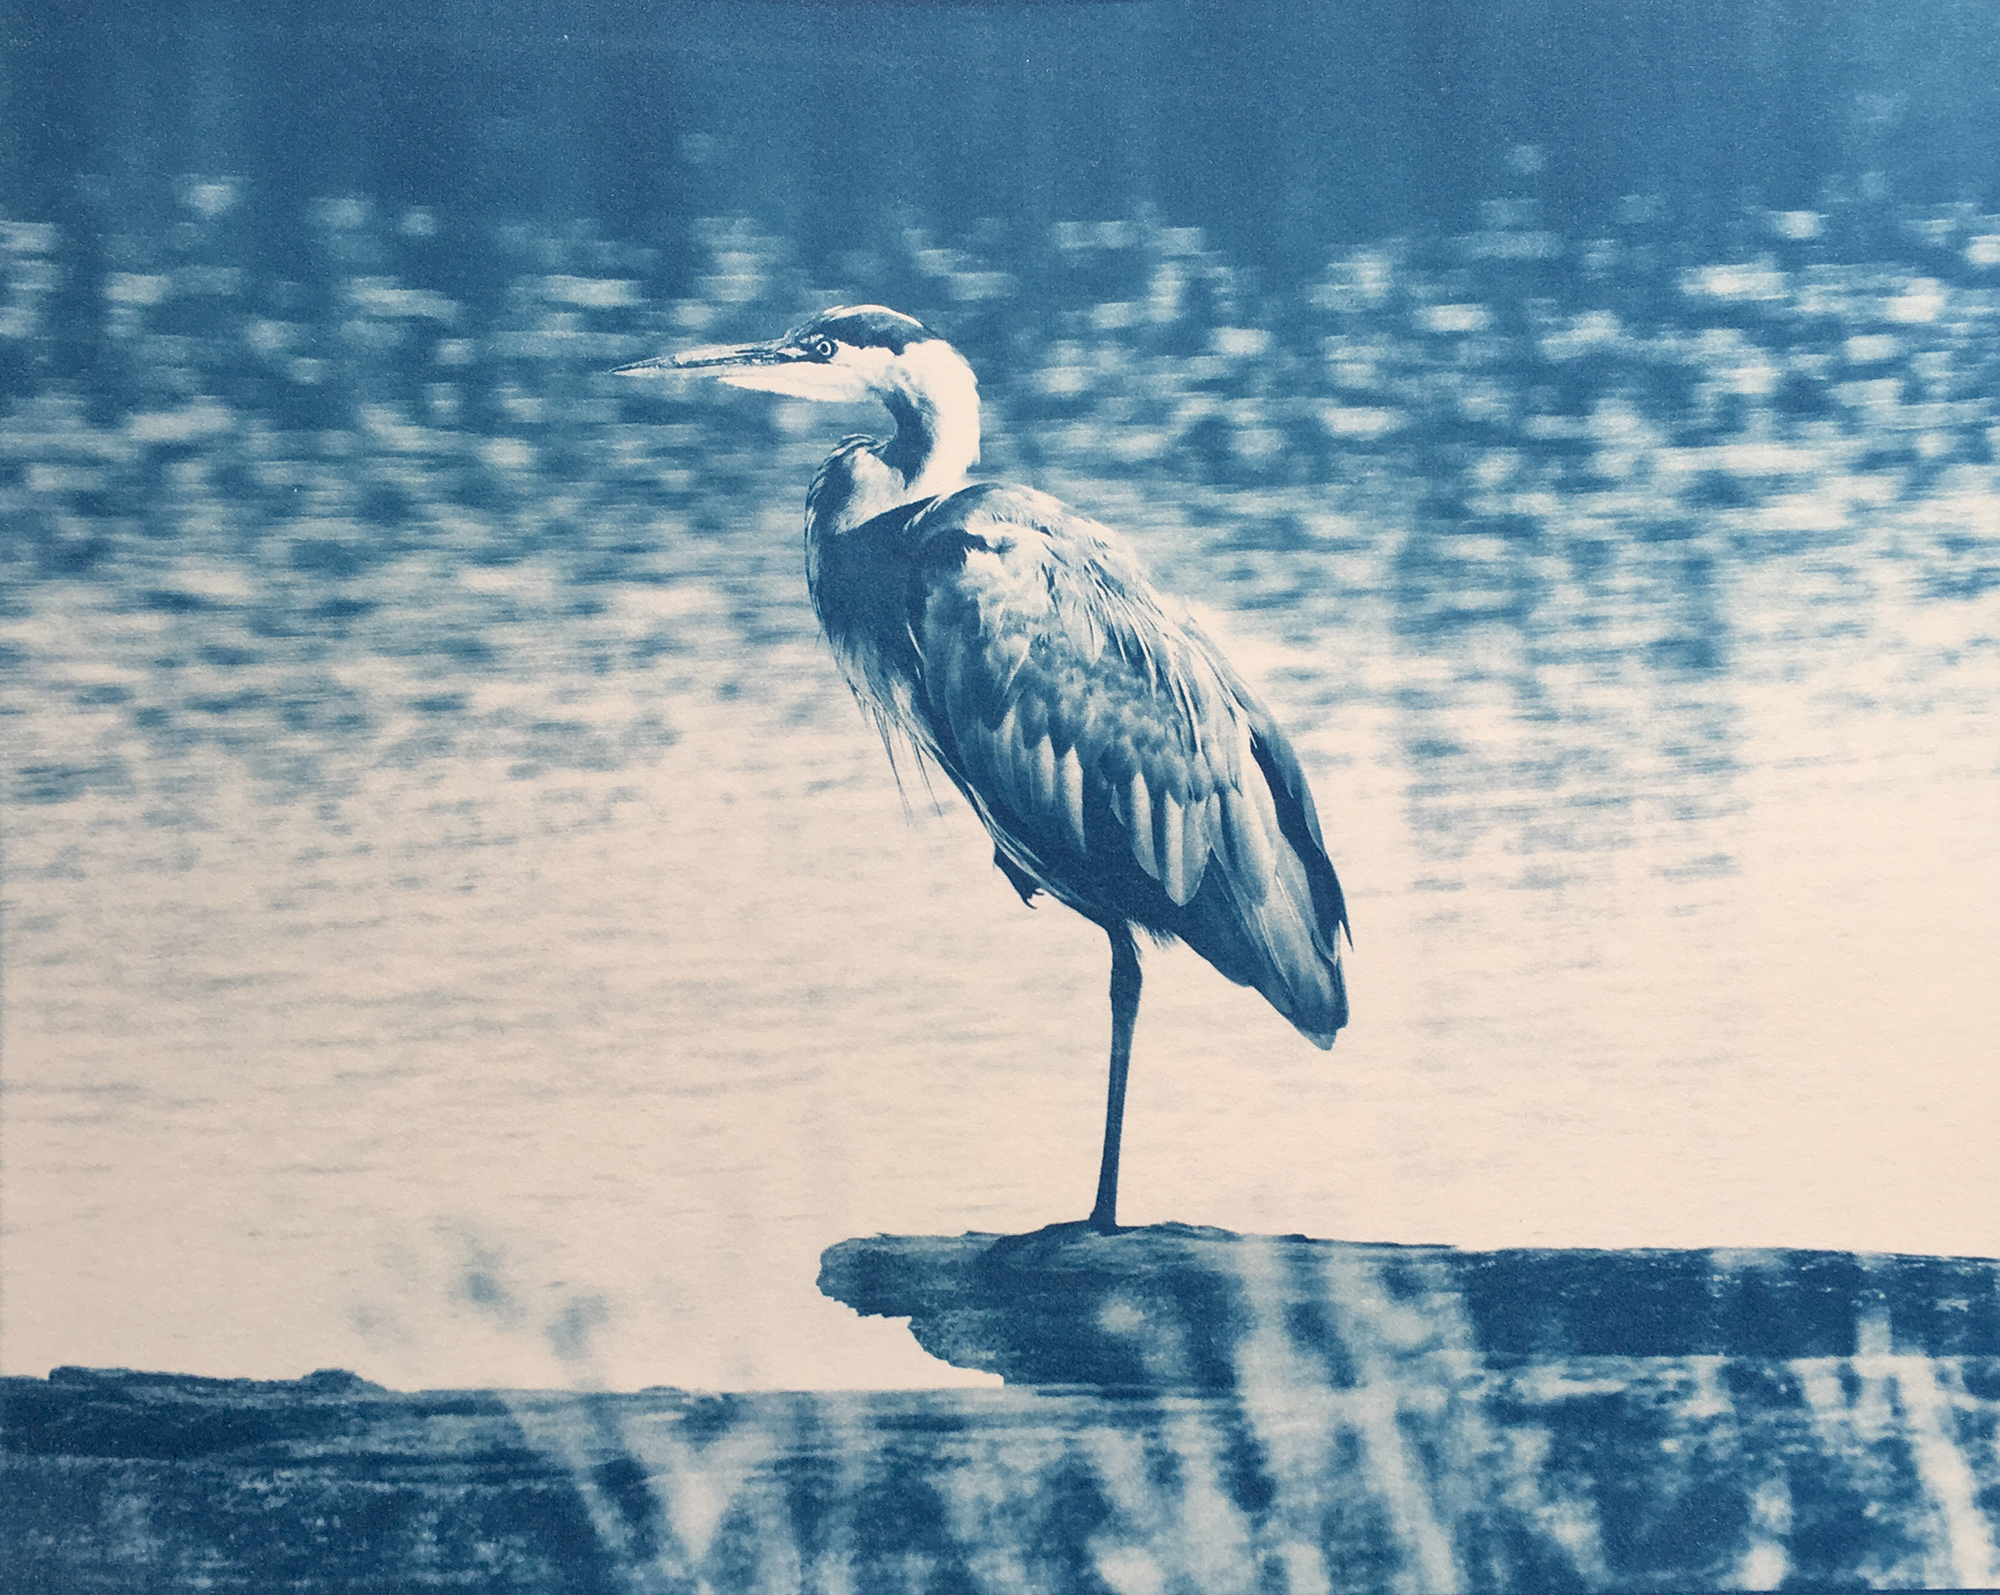 Historical Photographic Processes: Heron cyanotype by Daniel Gregory